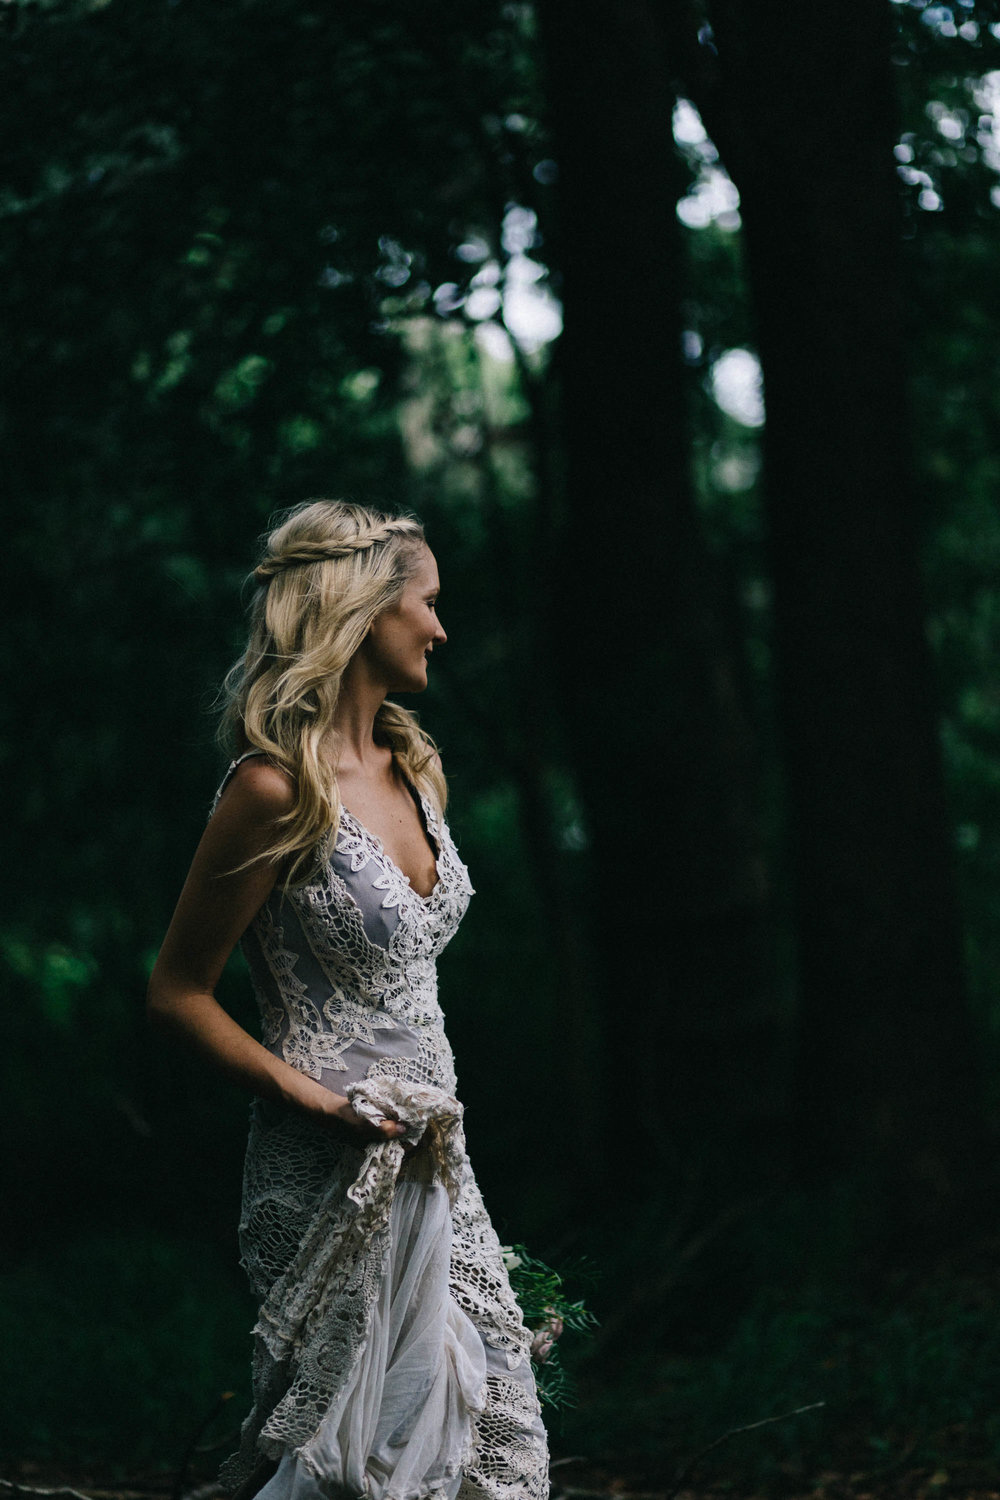 Lesh + Tom's wedding at The Fig Tree, Byron Bay